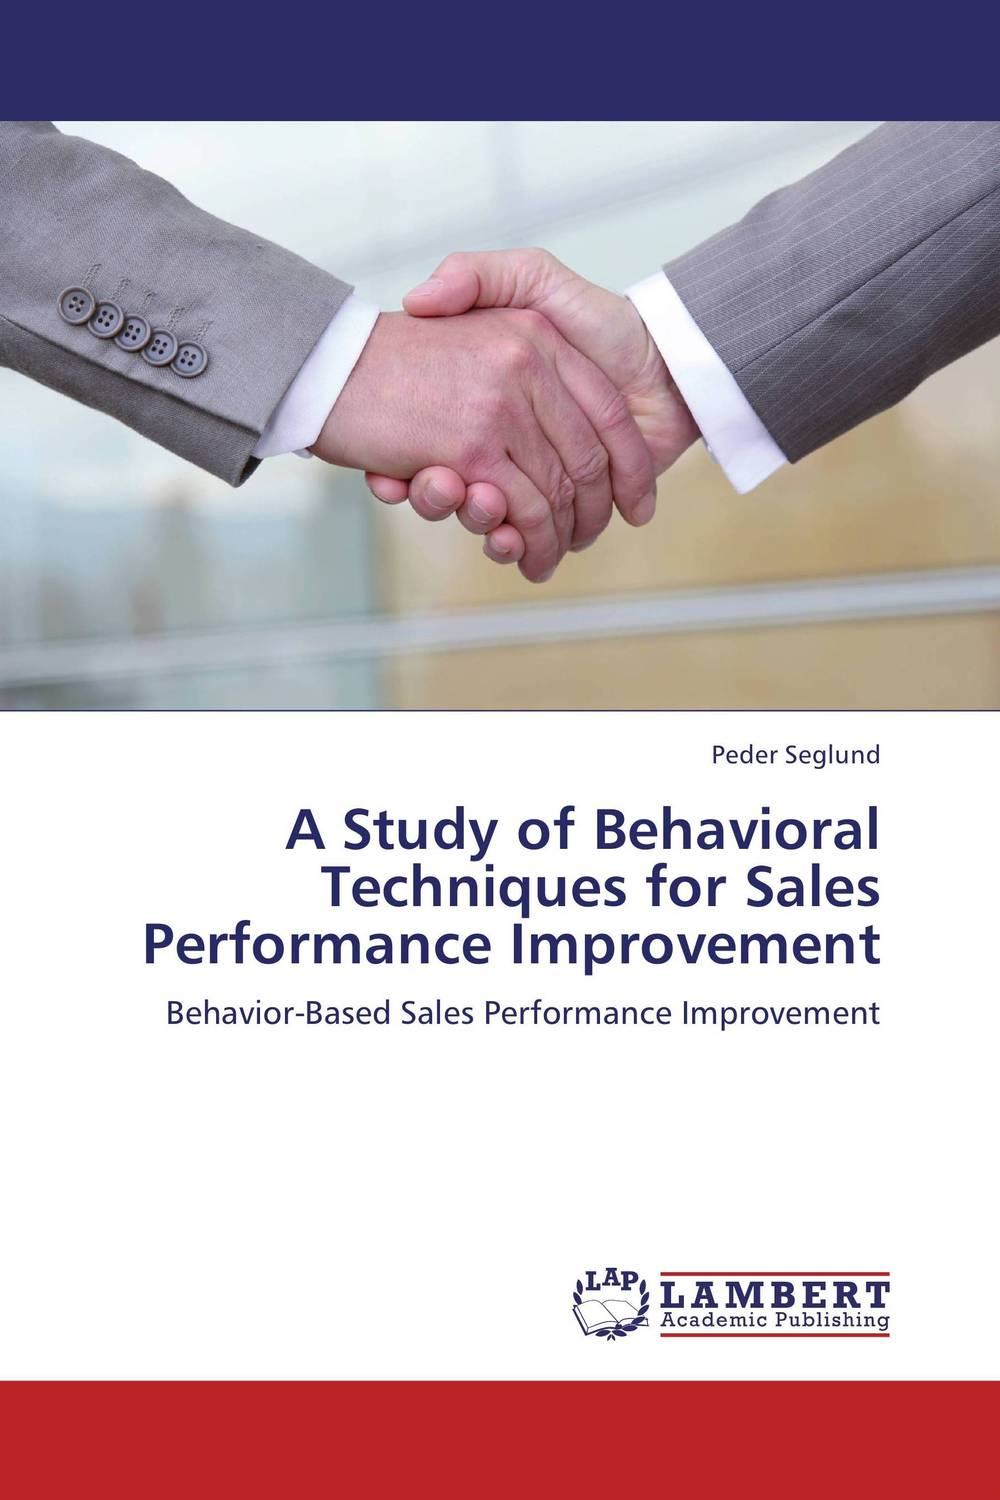 A Study of Behavioral Techniques for Sales Performance Improvement 1 pair boxing training sticks target mma precision training sticks punching reaction target muay thai grappling jujitsu tools